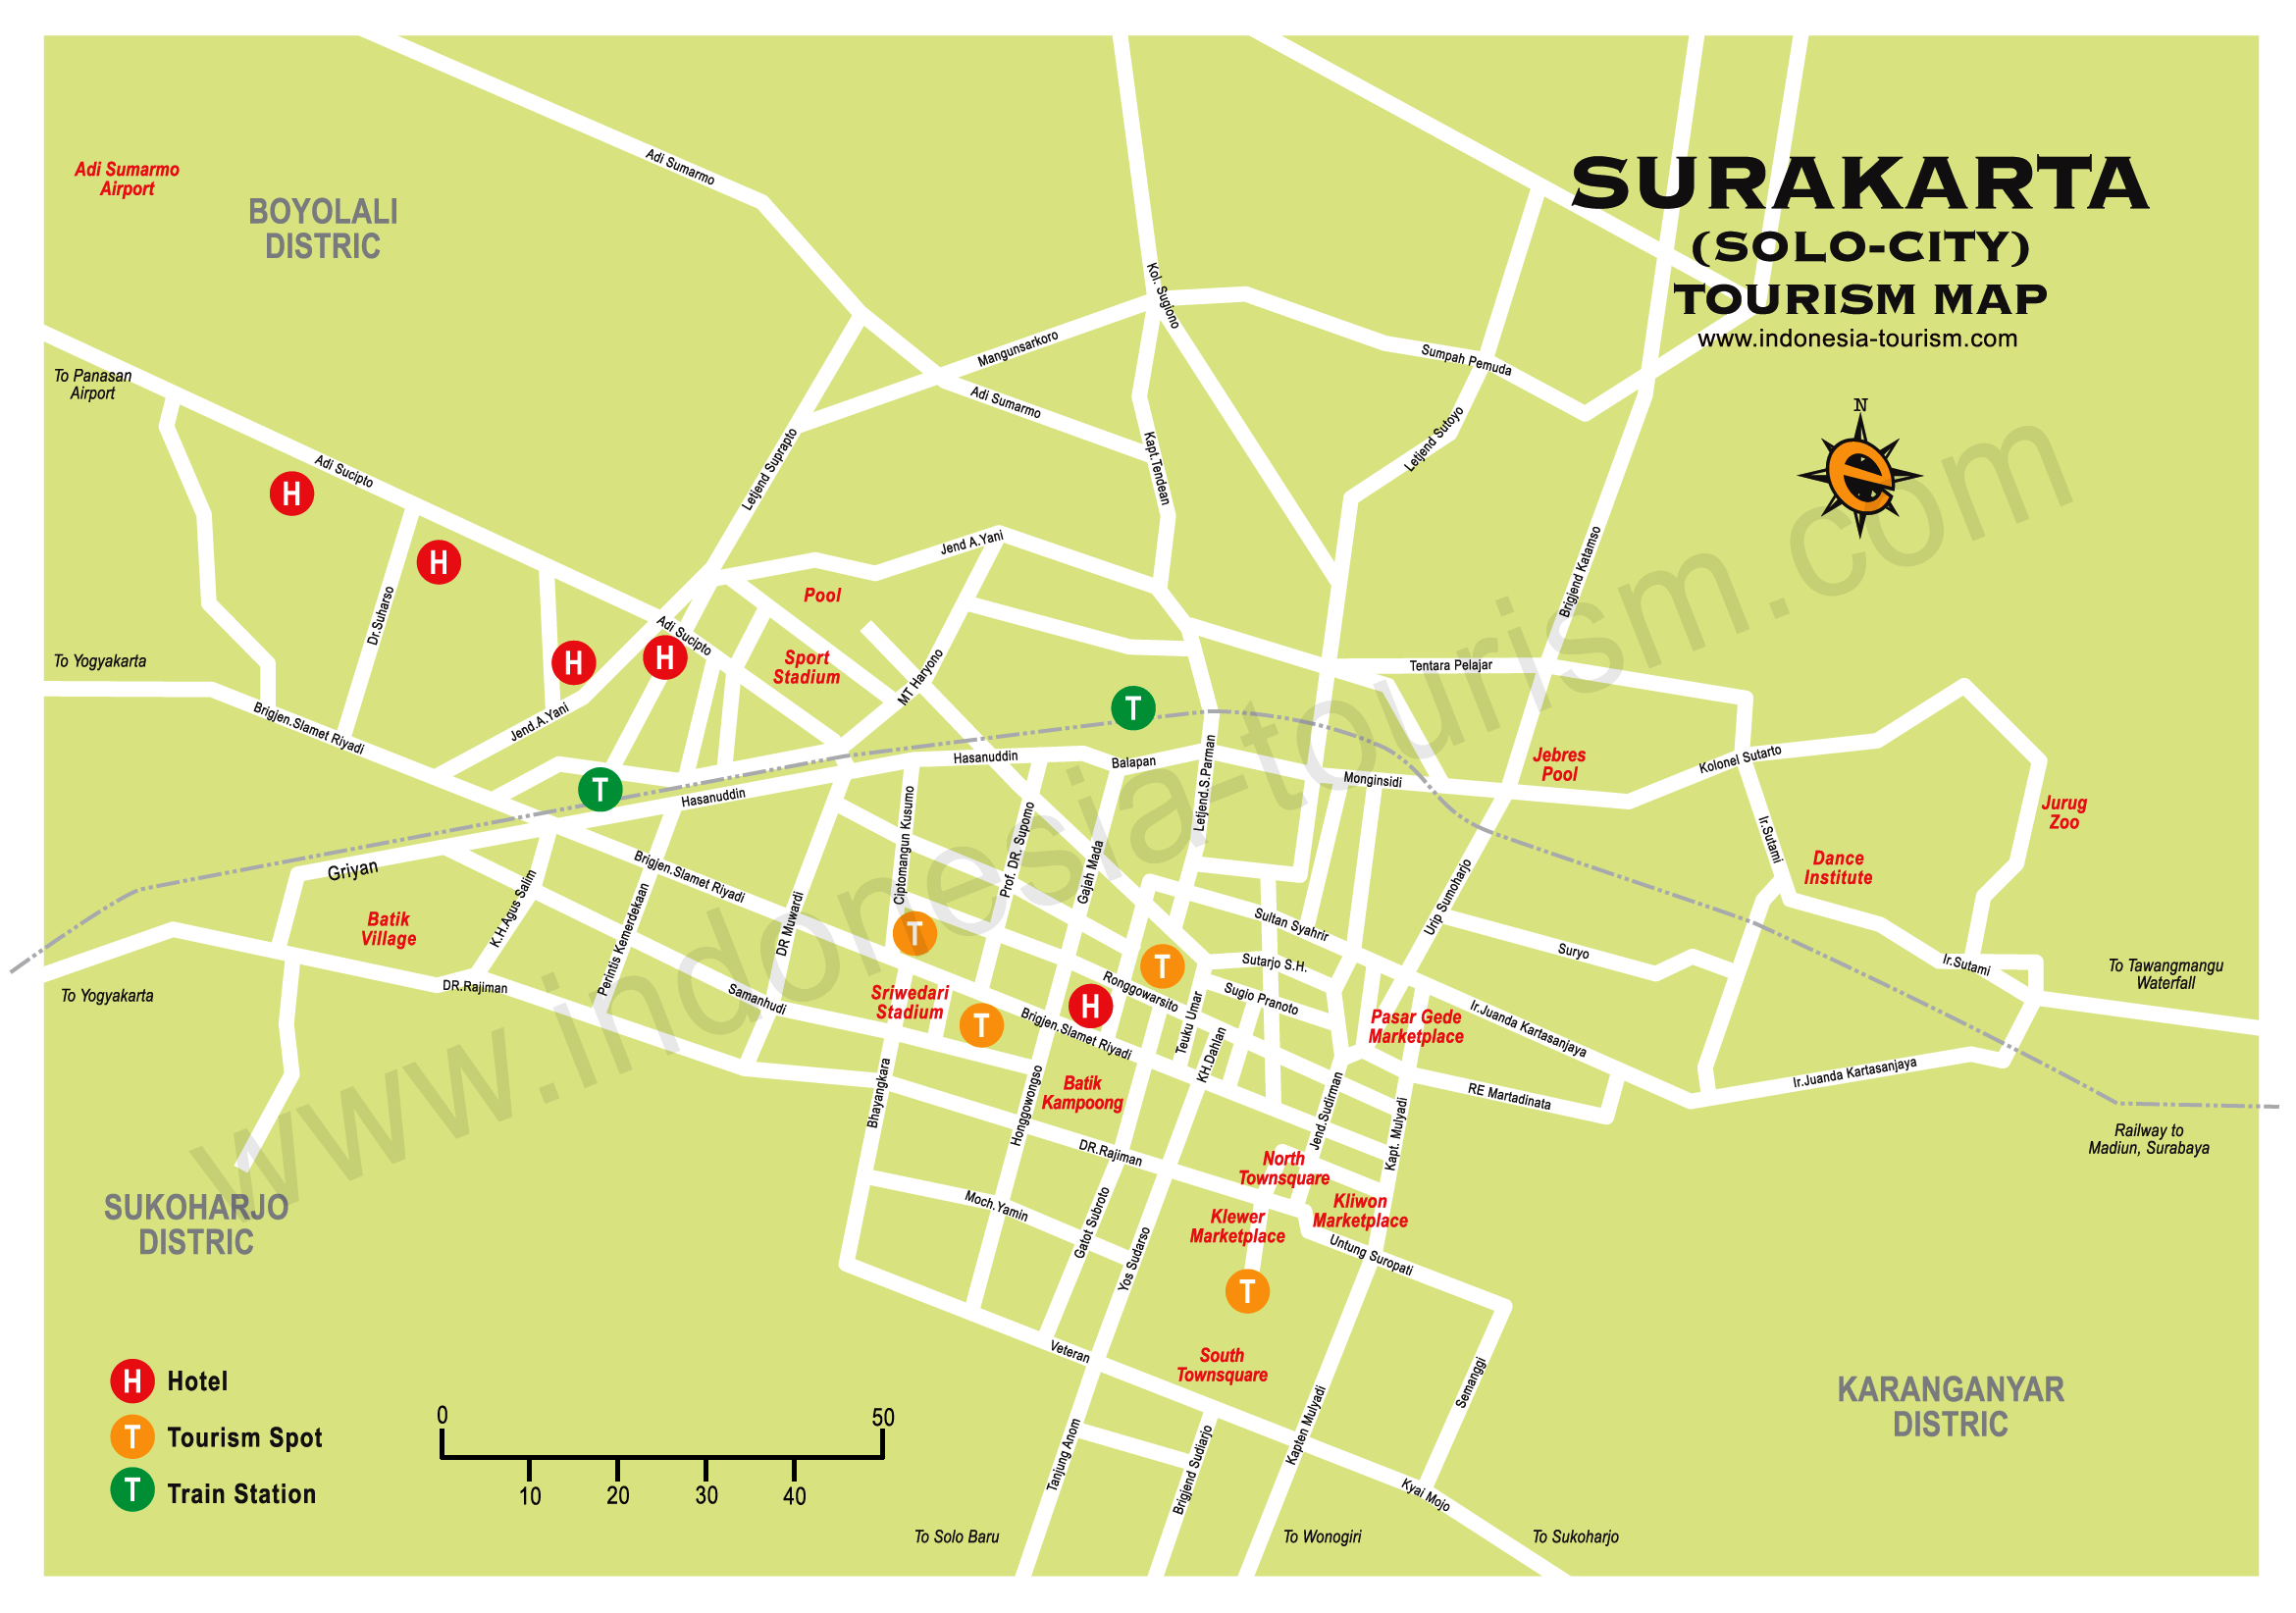 Map of Solo City Surakarta Central Java